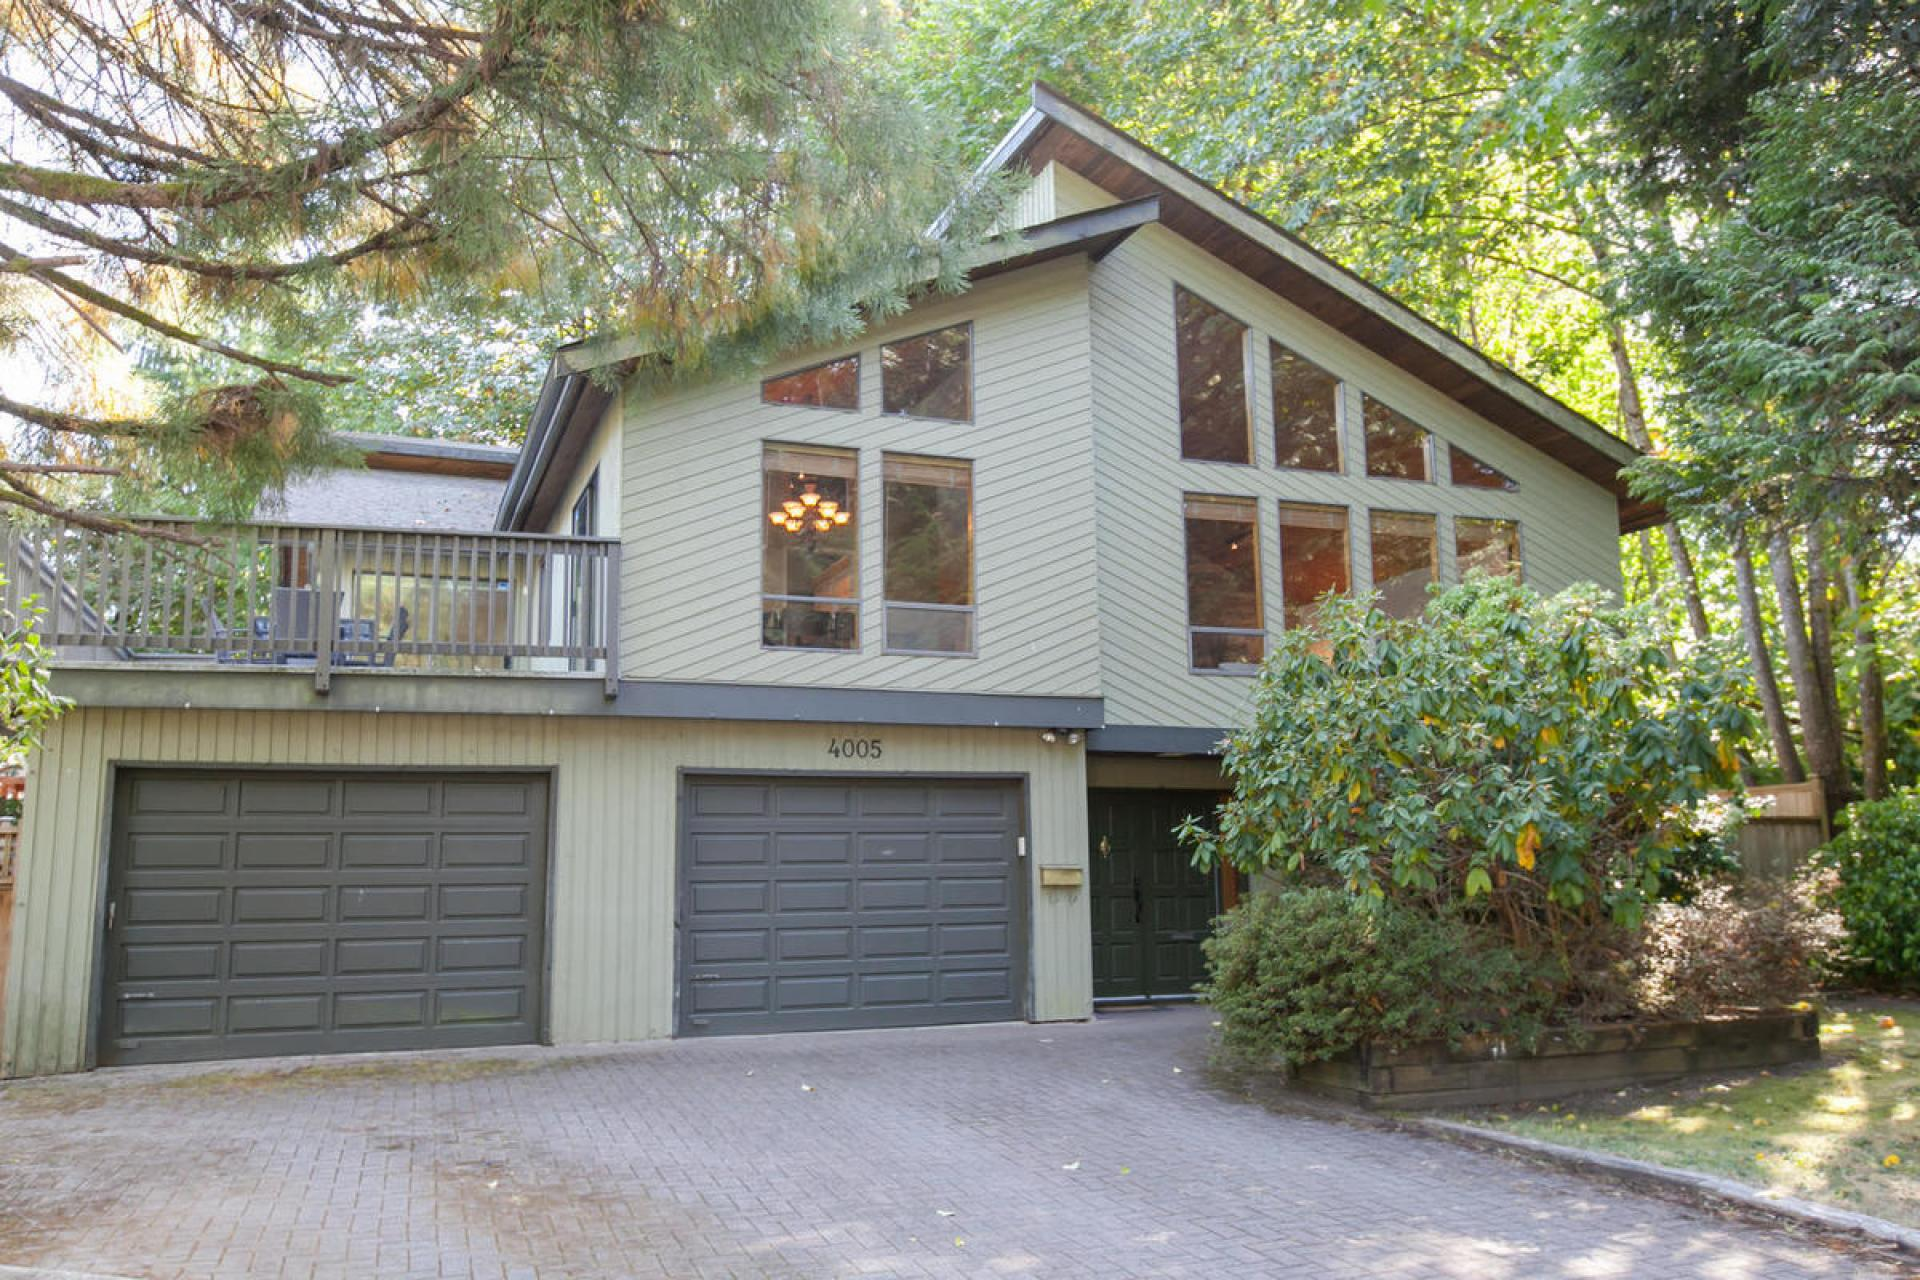 4005 Brockton Crescent, Crescent, Indian River, North Vancouver